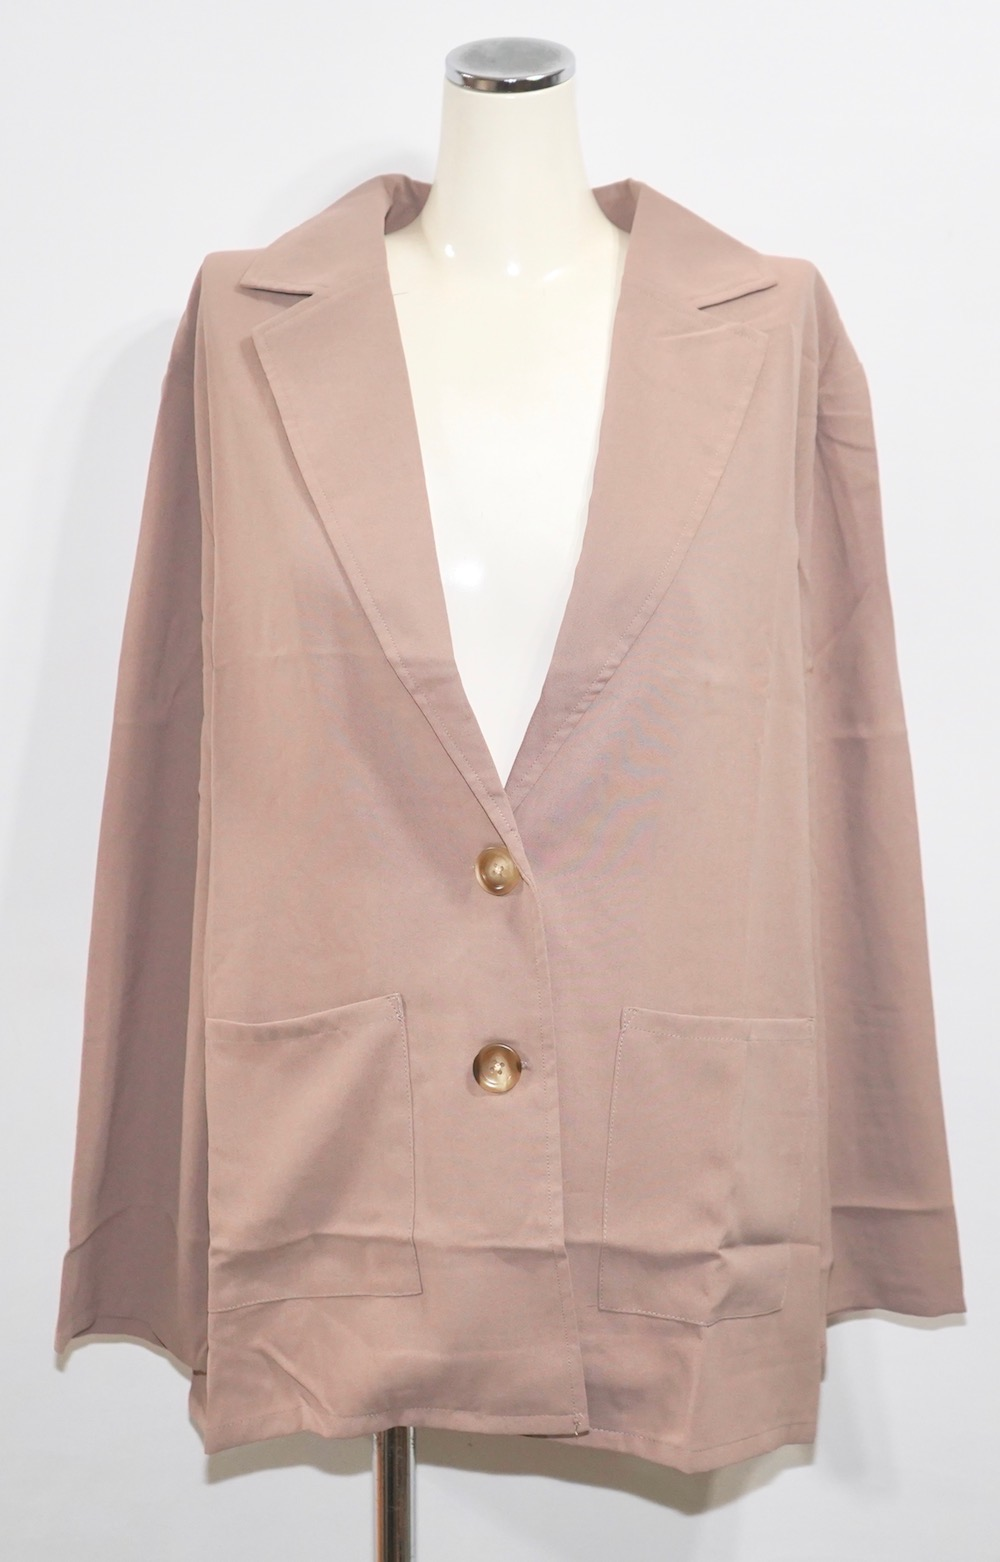 Single Breasted Tailored Jacket (ash beige)